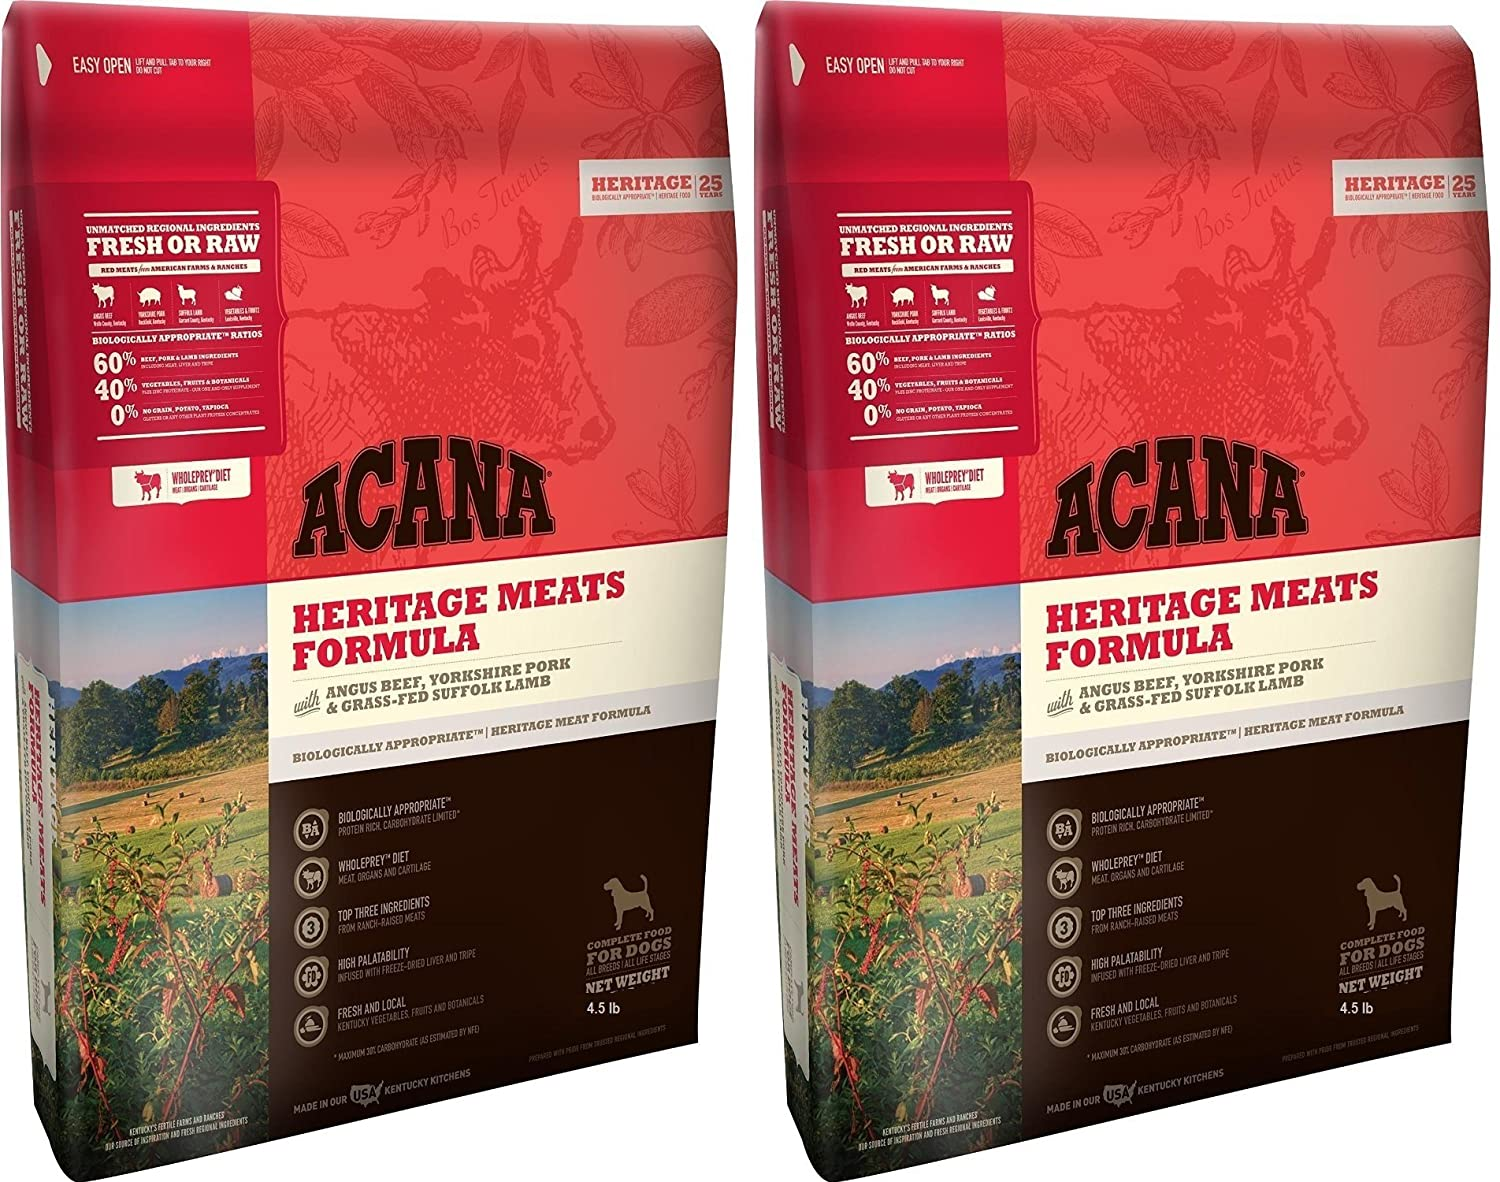 ACANA Heritage Meats Dog Food, 4.5 Pound Bag 2 Pack